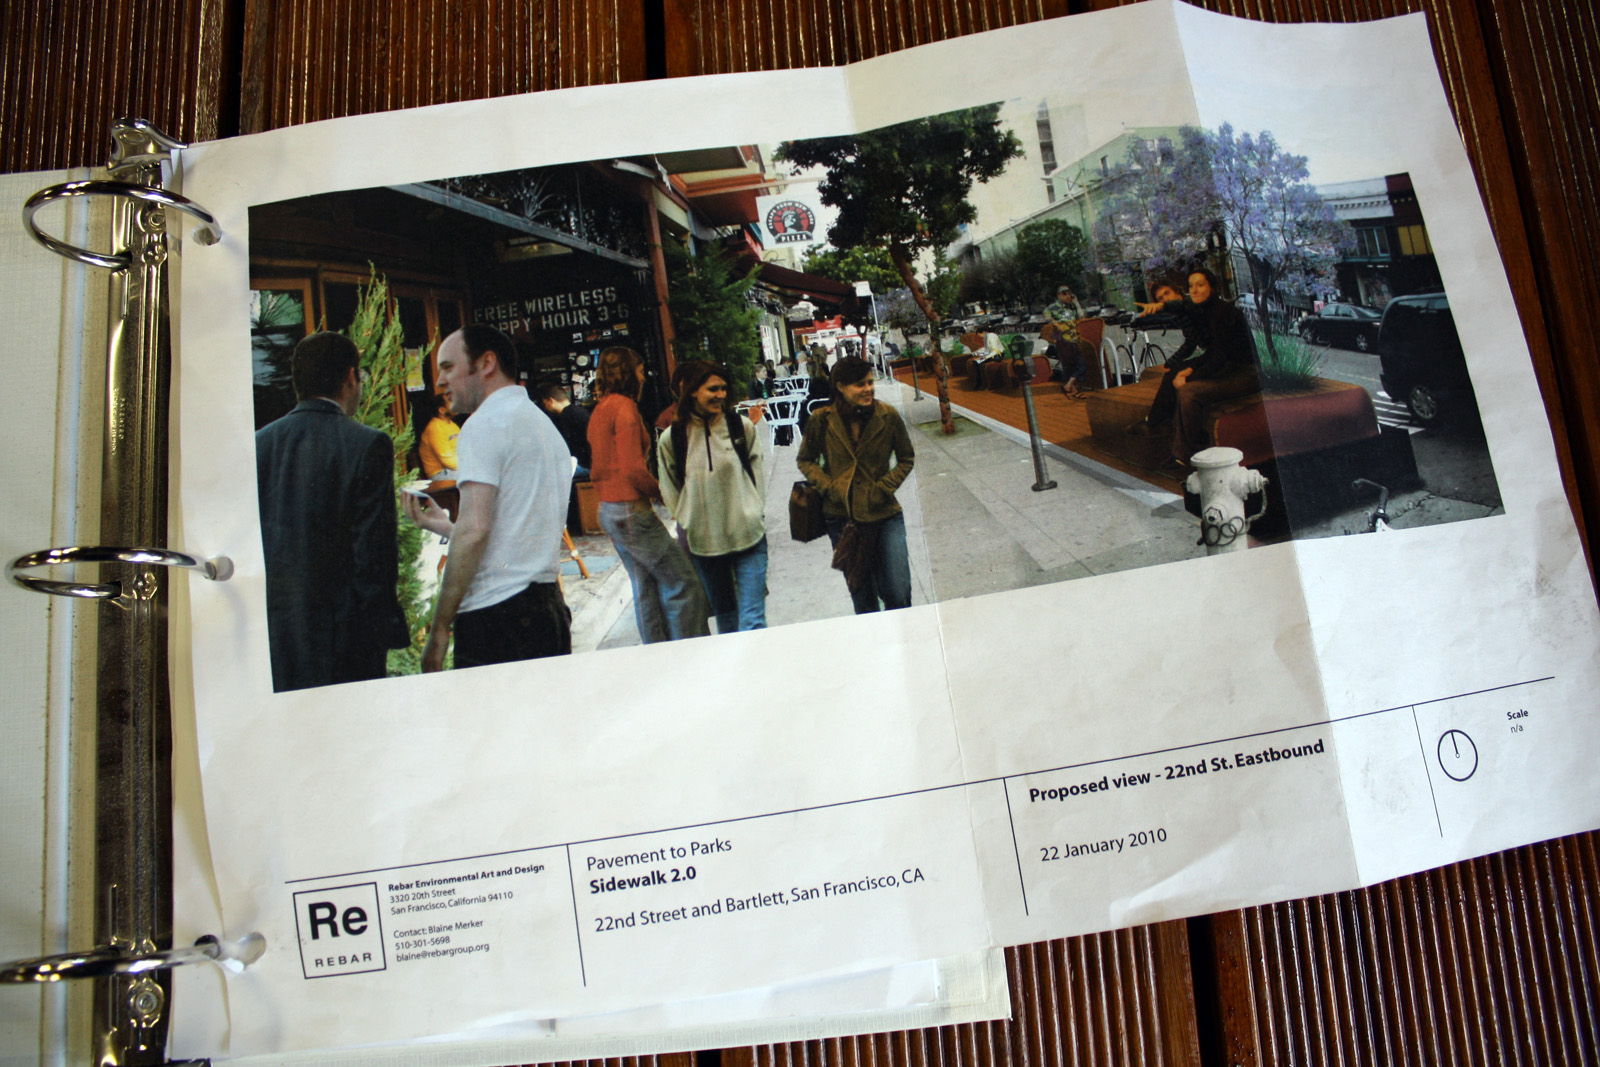 Coming Tuesday: A New (Tiny) Social Space on 22nd Street